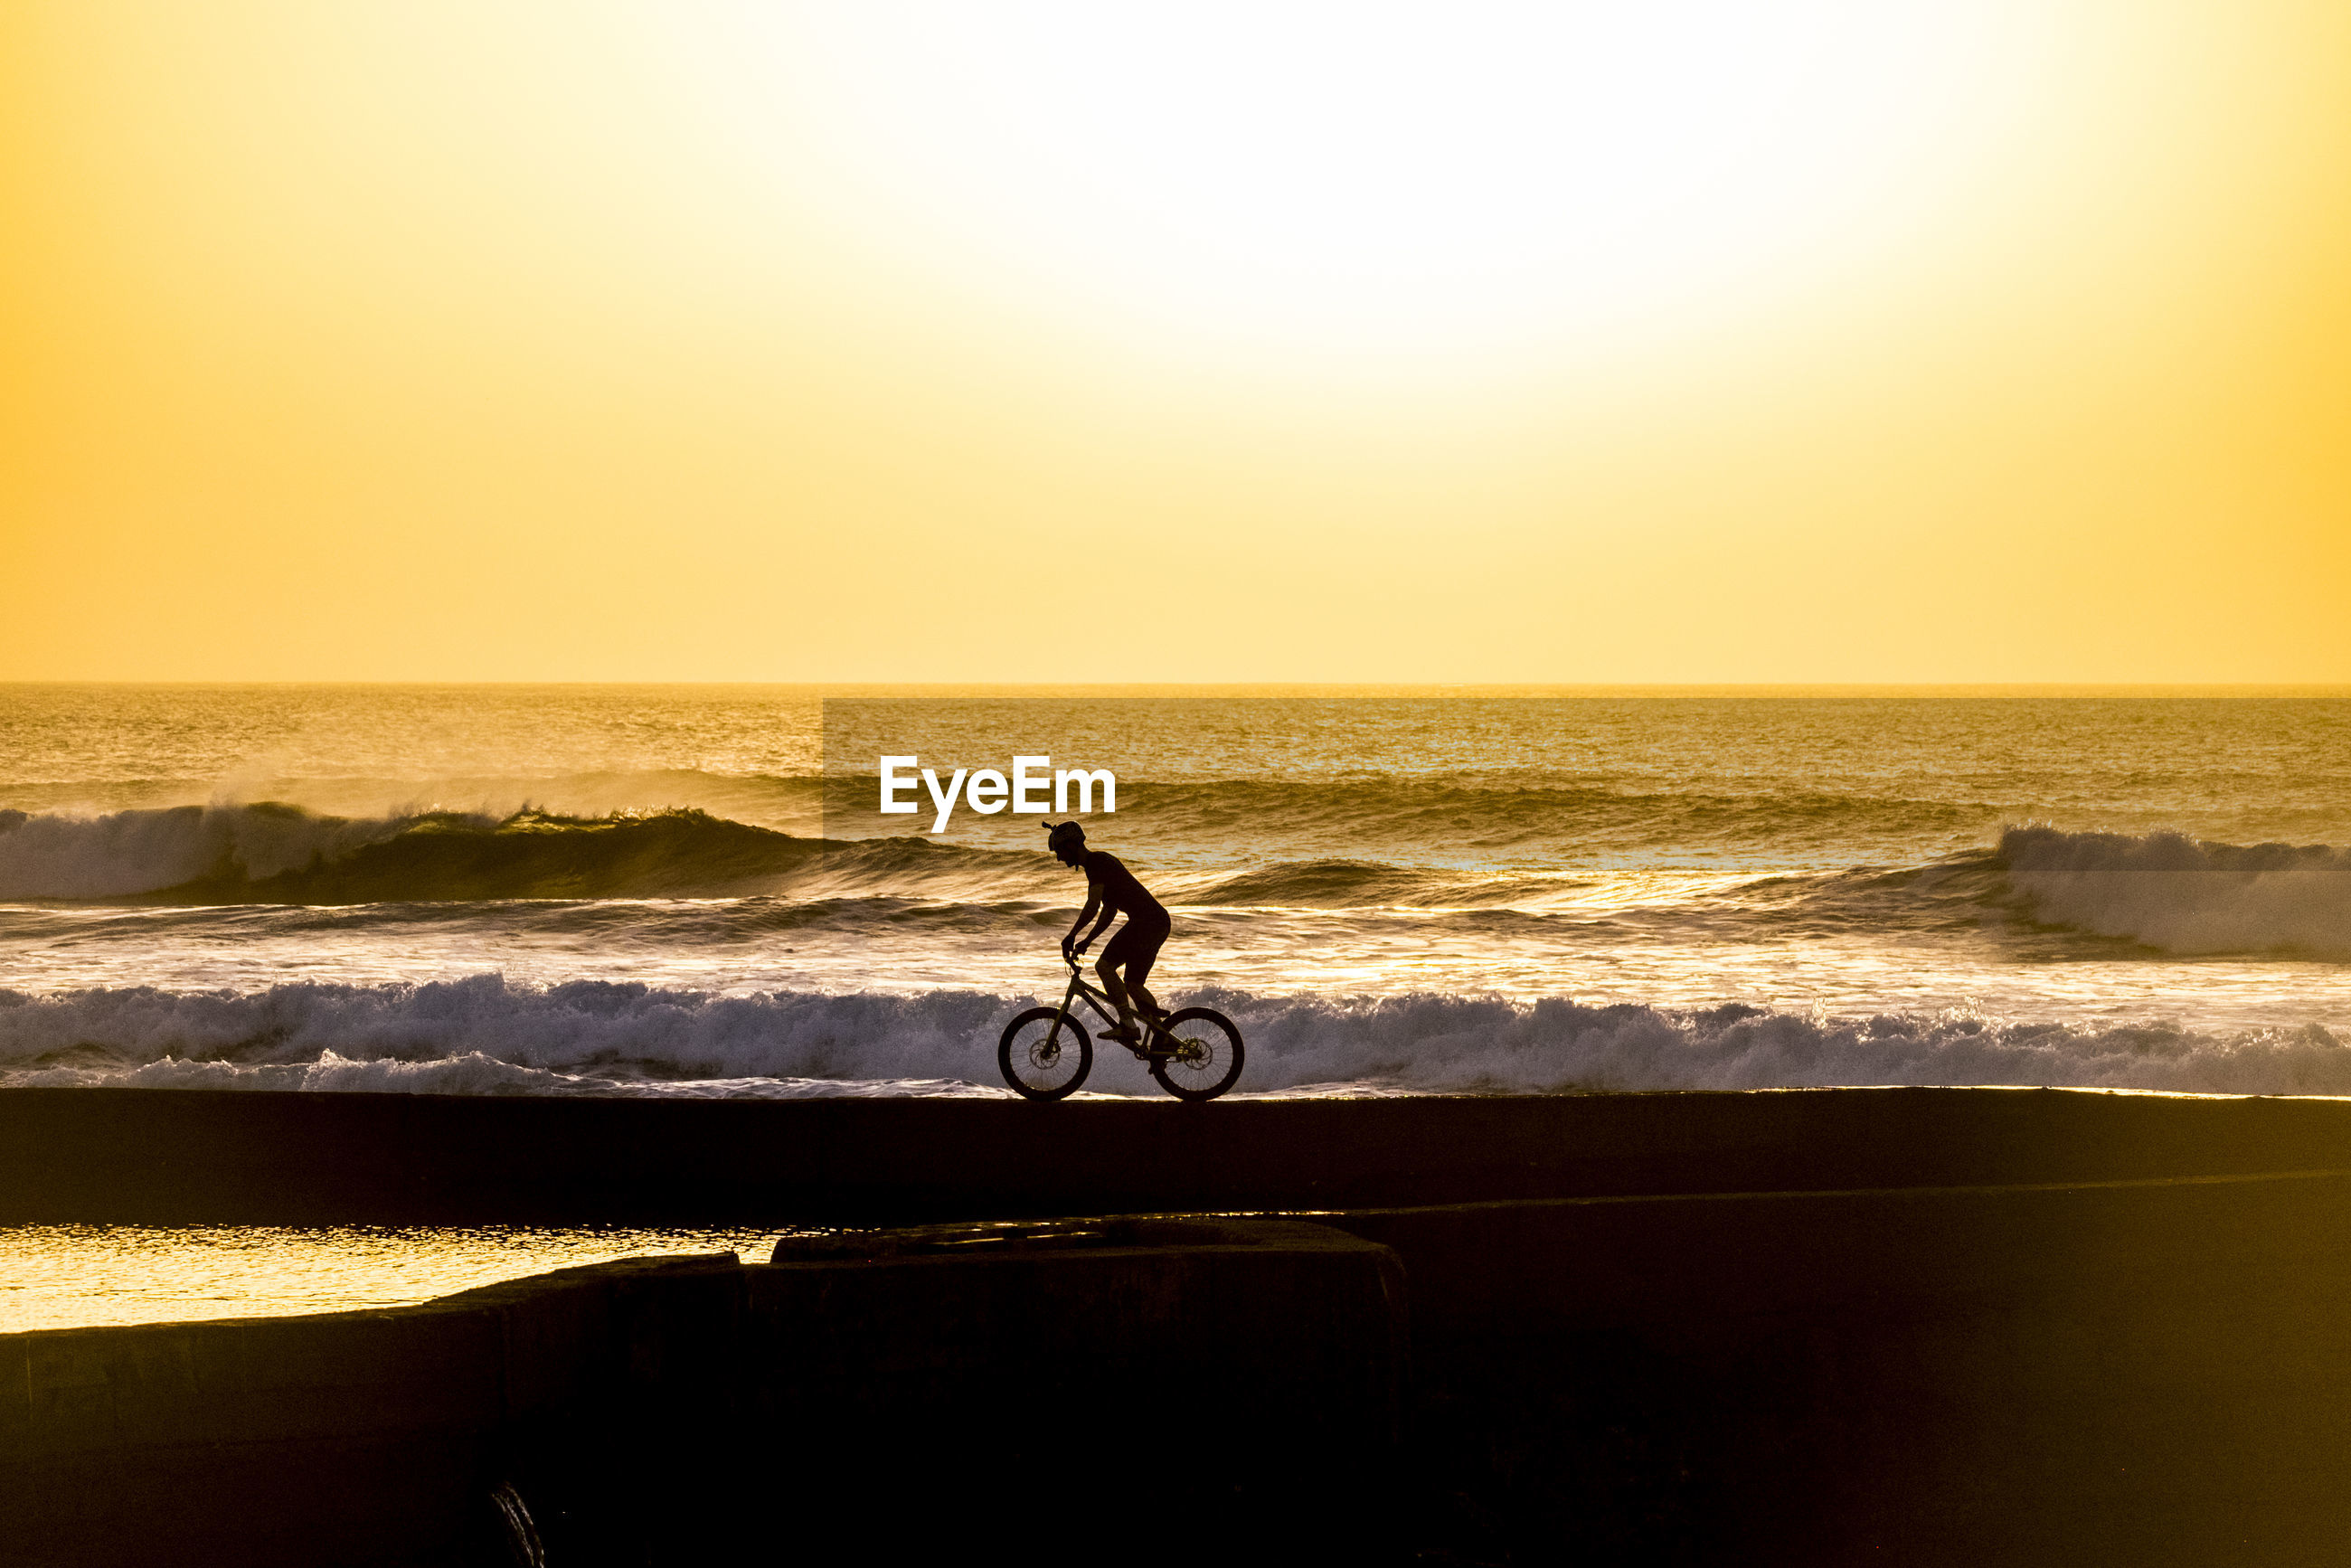 Silhouette man riding bicycle on shore at beach against clear sky during sunset